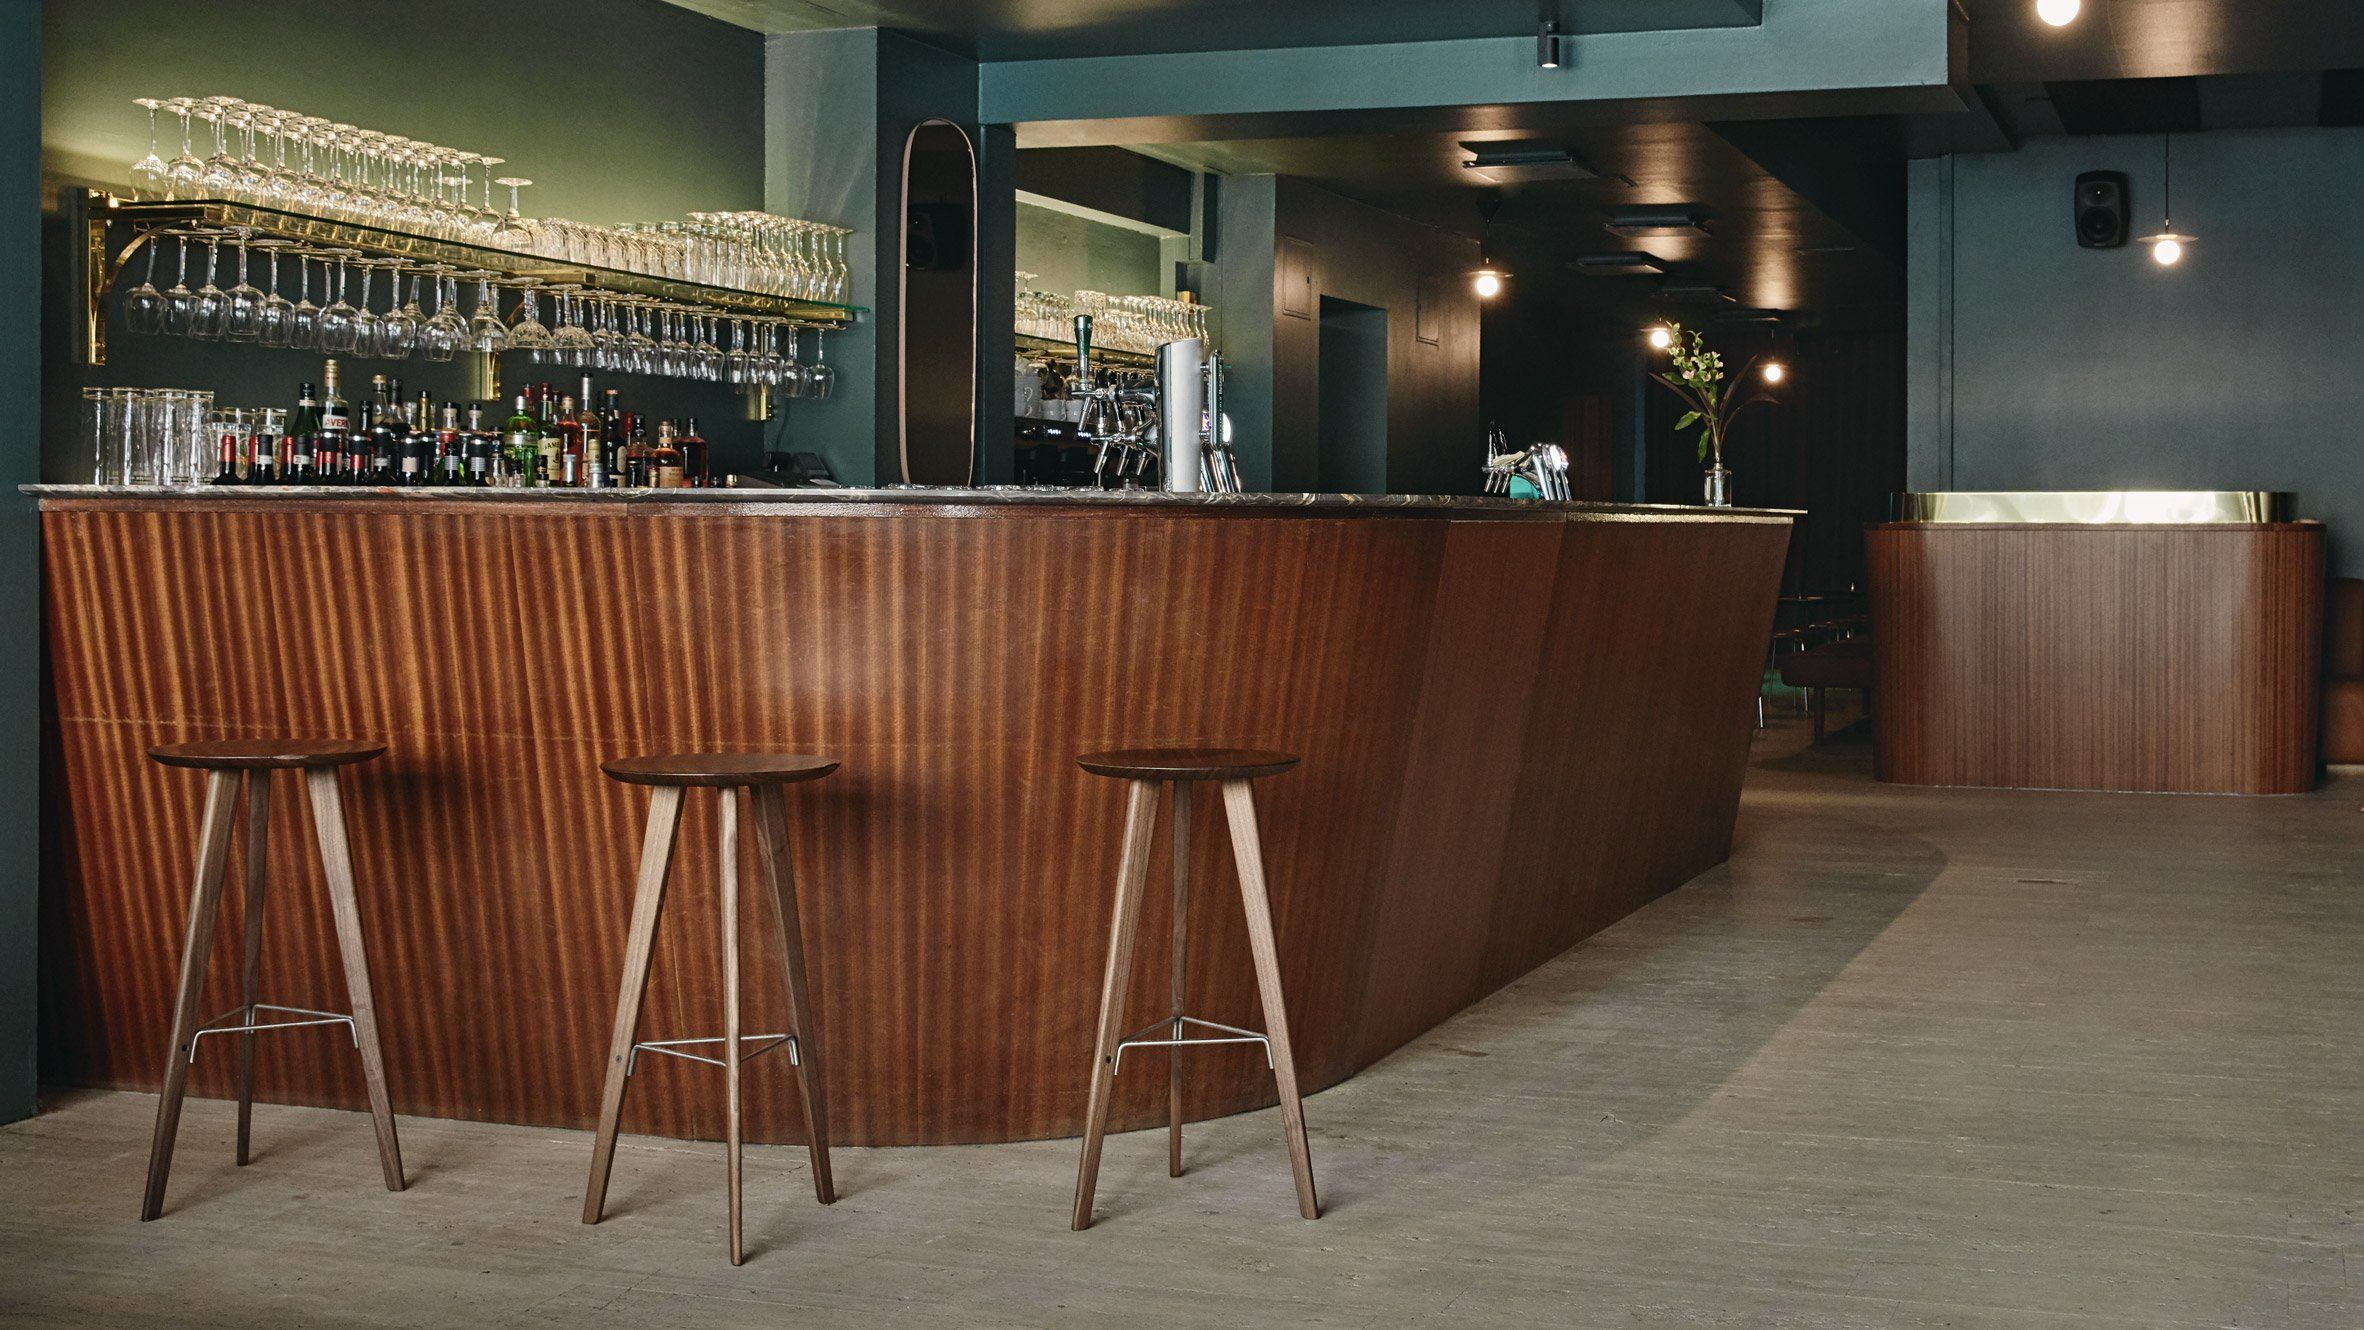 Helsinki's Jackie bar takes its design cues from 60s and 70s disco music